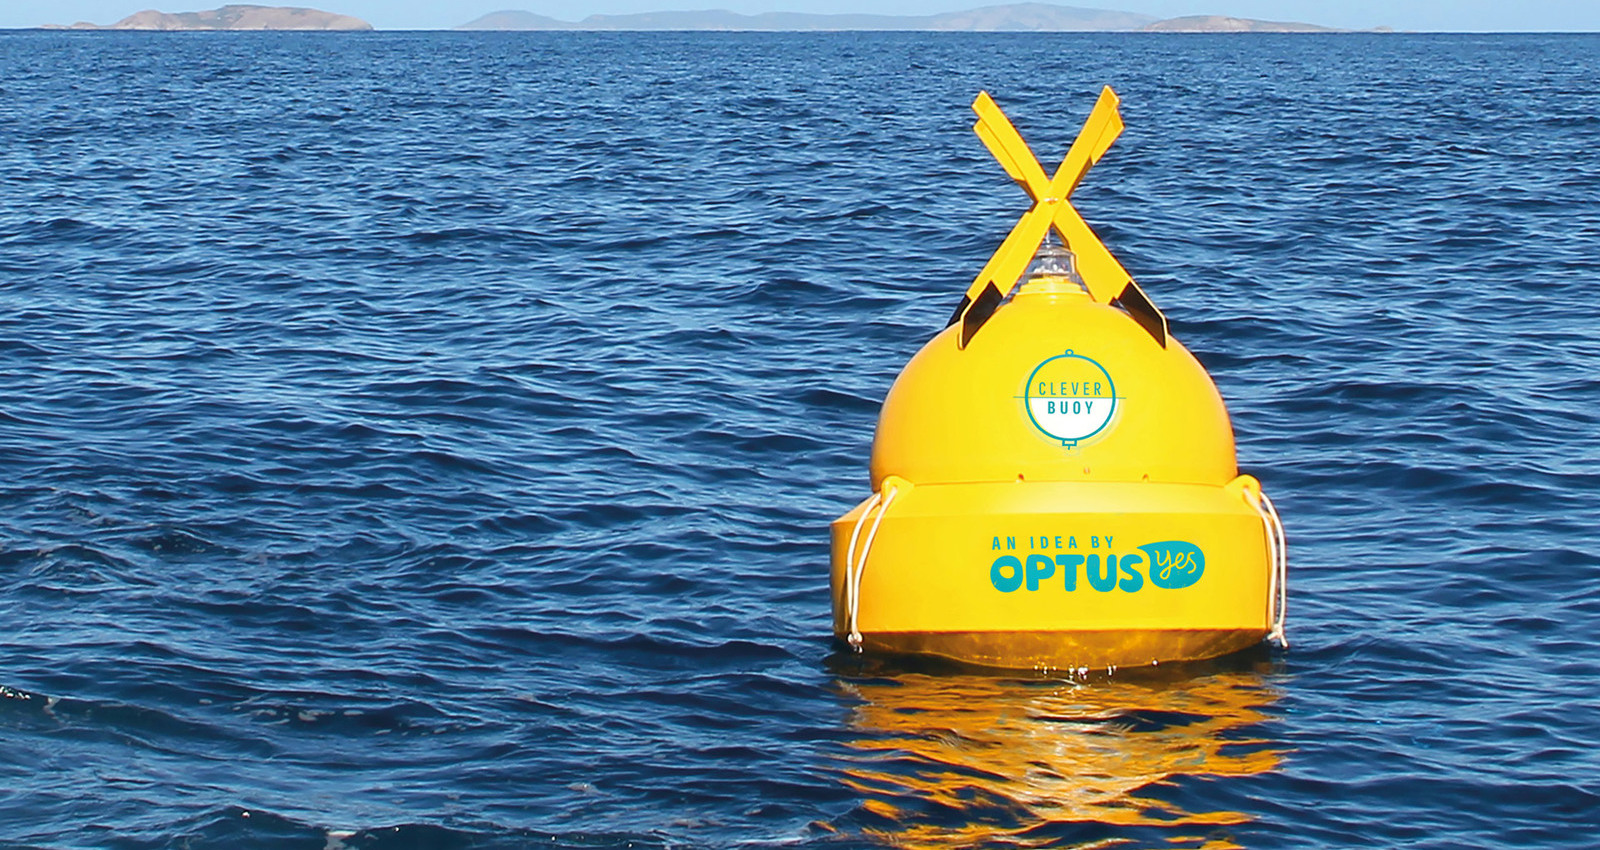 Cleverbuoy